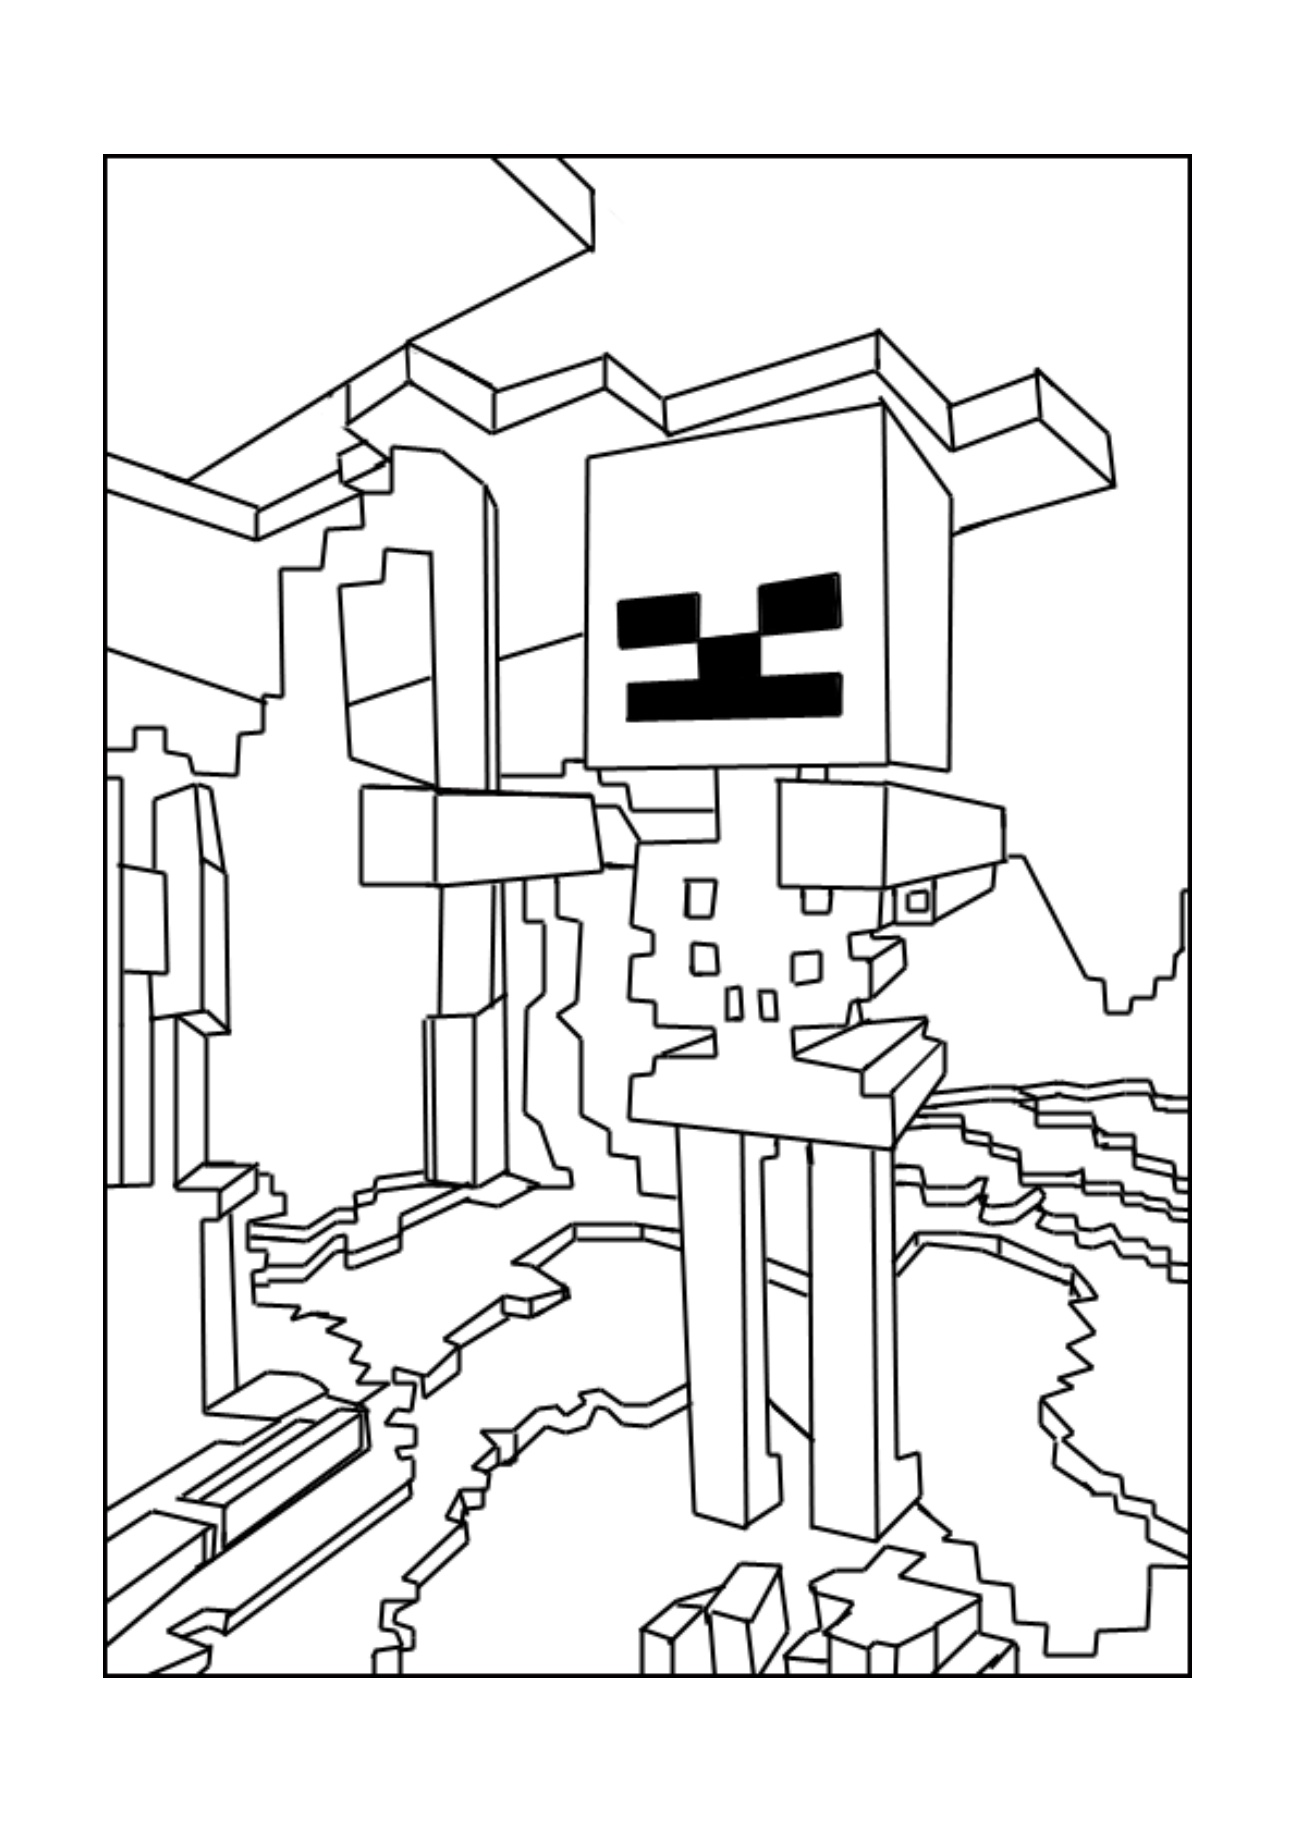 mindcraft coloring sheets minecraft coloring pages print them for free 100 mindcraft sheets coloring